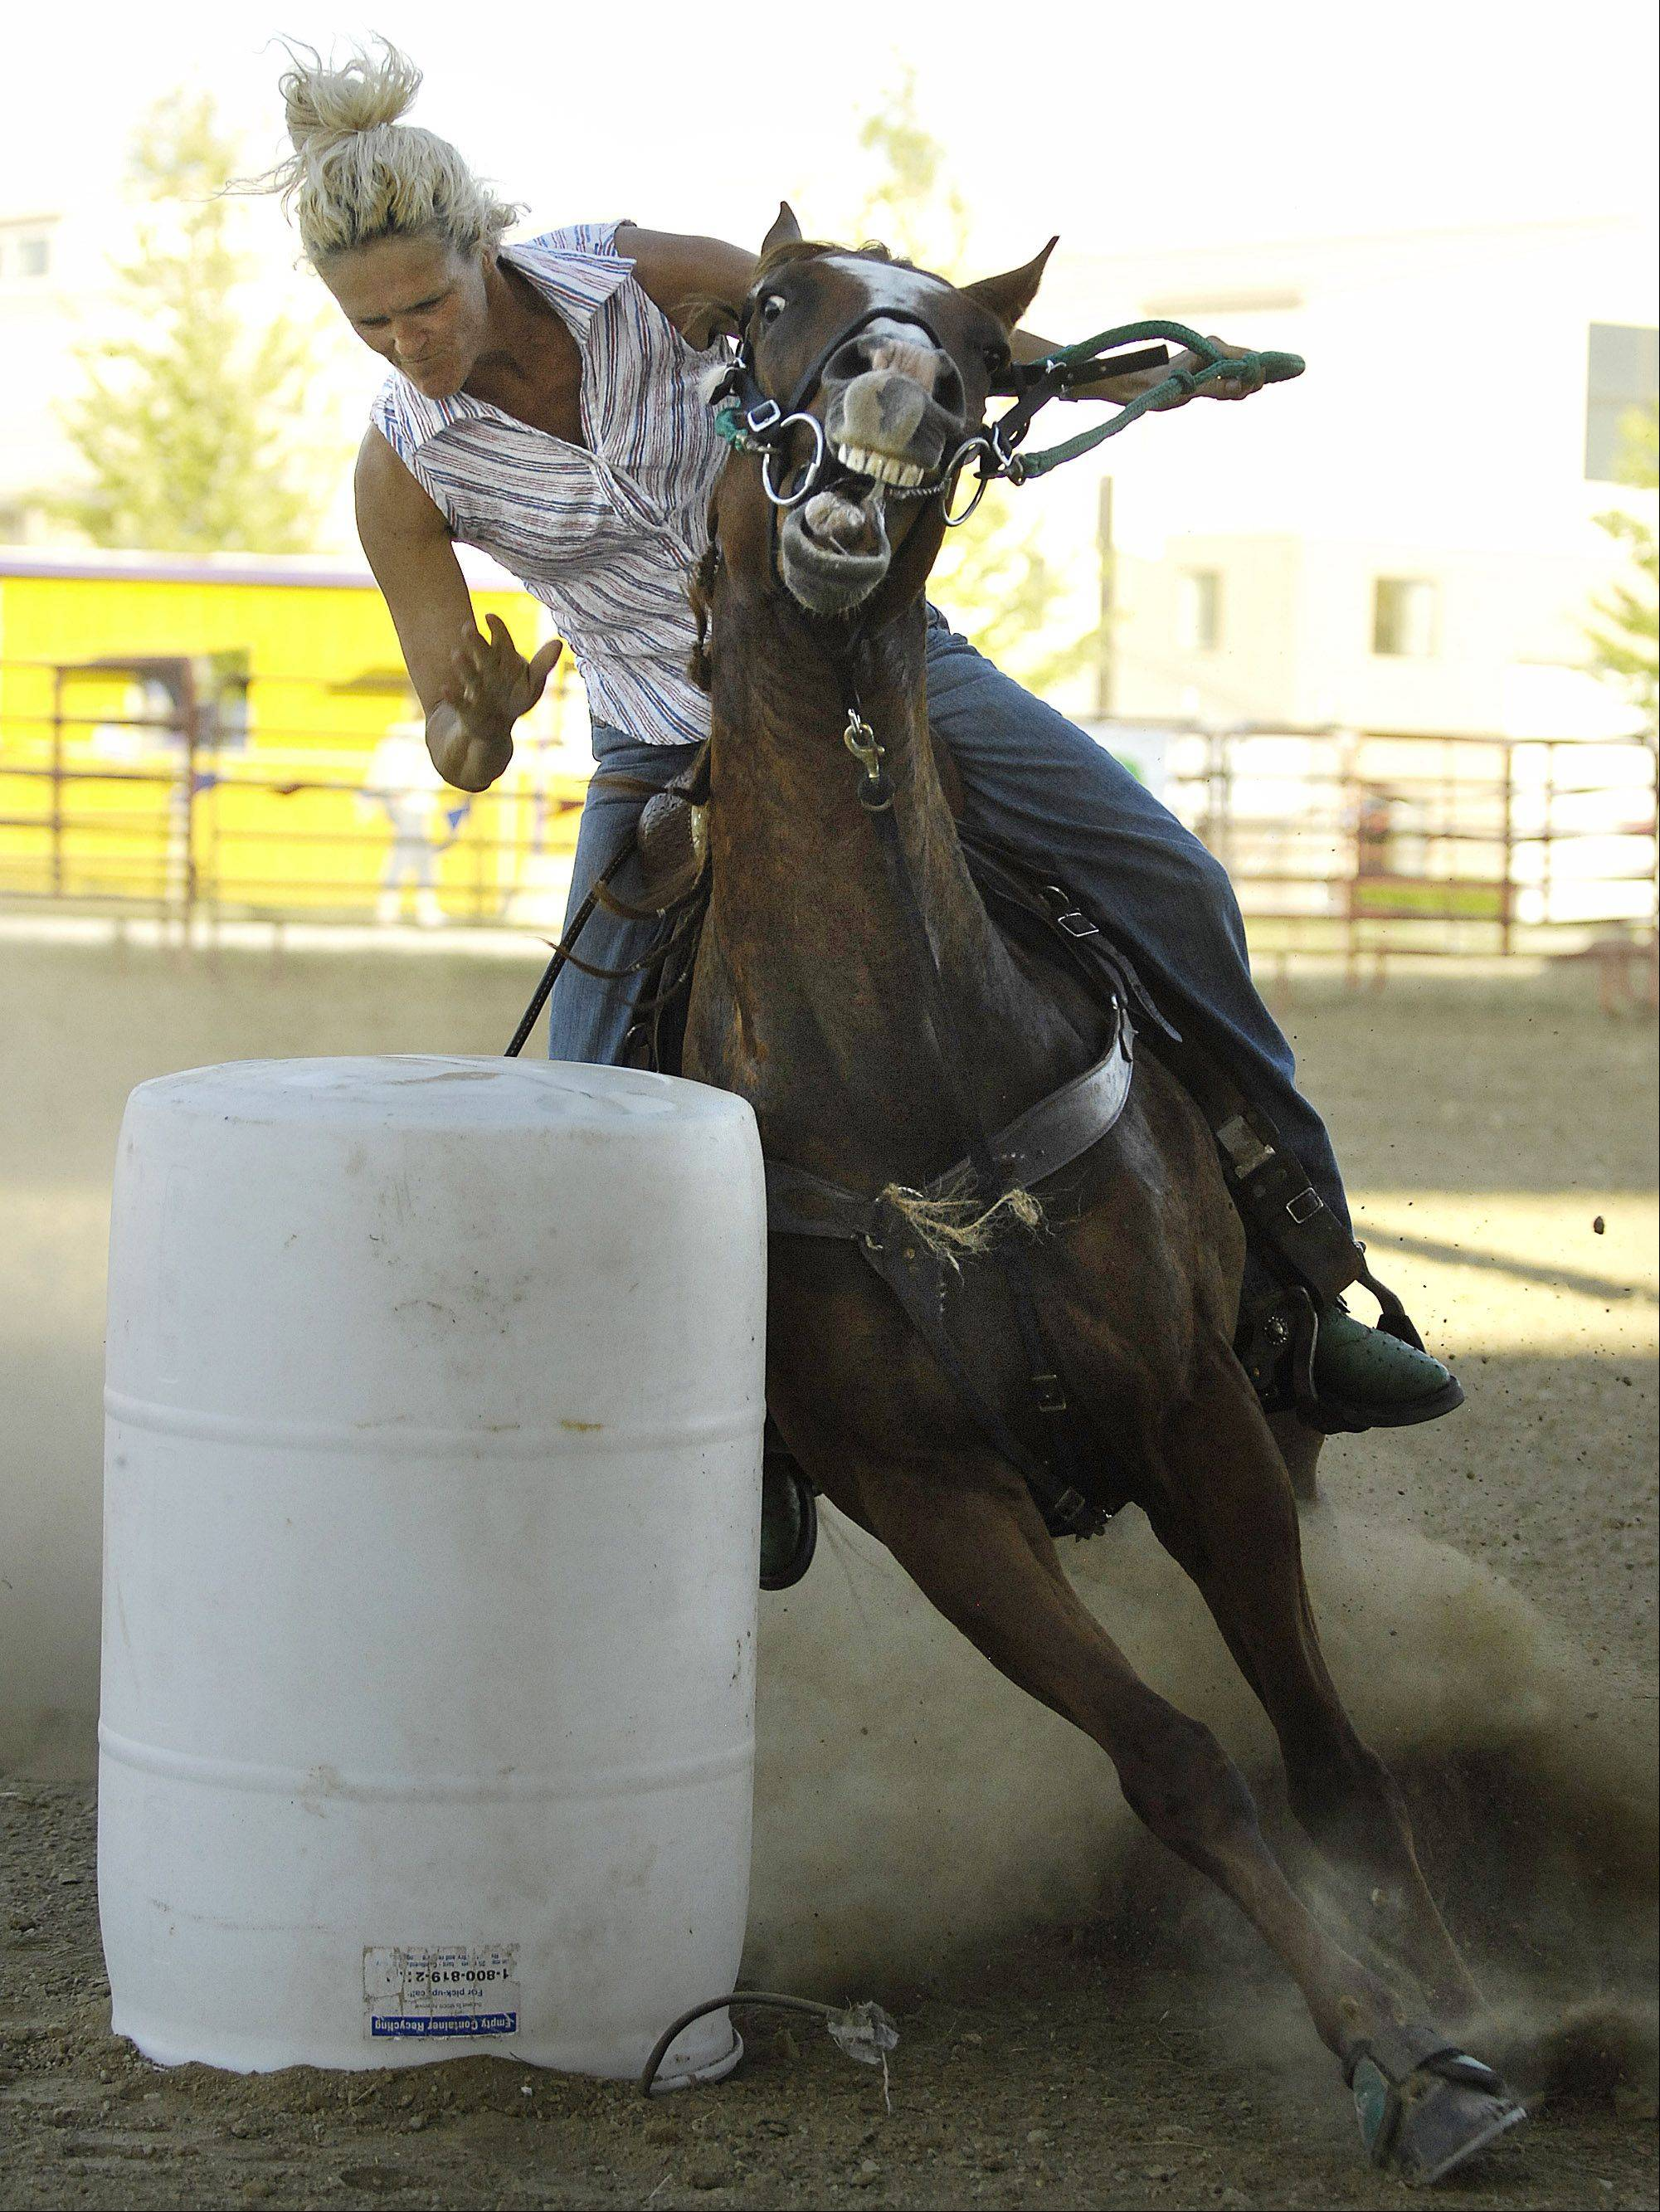 Charlene Whitaker reaches out to touch a barrel as her horse charges around it during barrel racing at the Kane County Fair Wednesday in St. Charles.